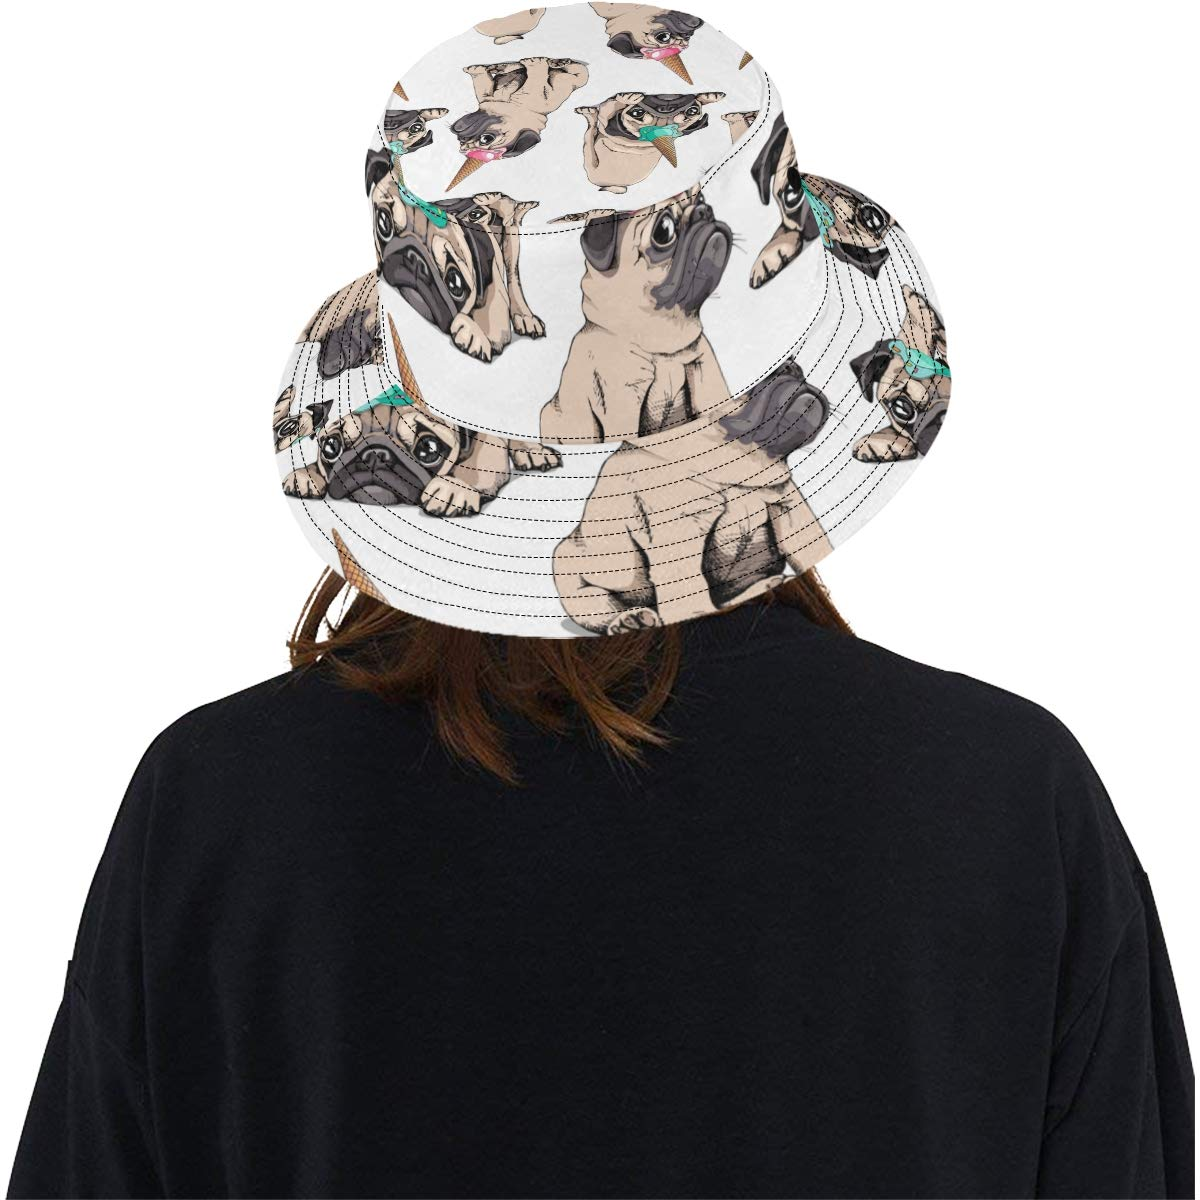 Teens Women and Men with Customize Top Packable Fisherman Cap for Outdoor Travel Cute Dog Eat Cold Ice Cream New Summer Unisex Cotton Fashion Fishing Sun Bucket Hats for Kid